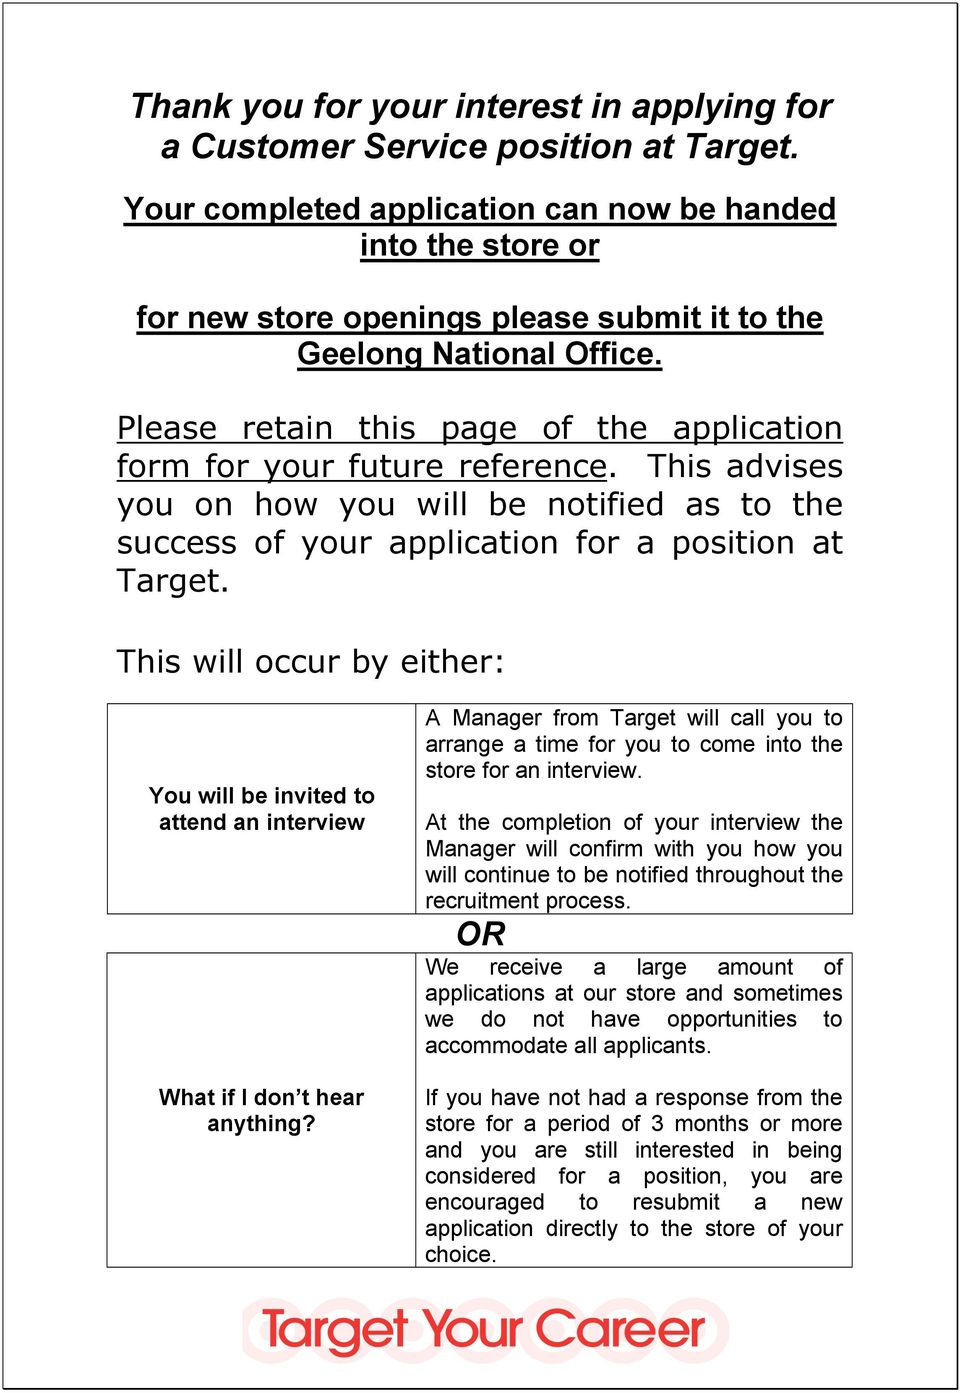 Please retain this page of the application form for your future reference. This advises you on how you will be notified as to the success of your application for a position at Target.